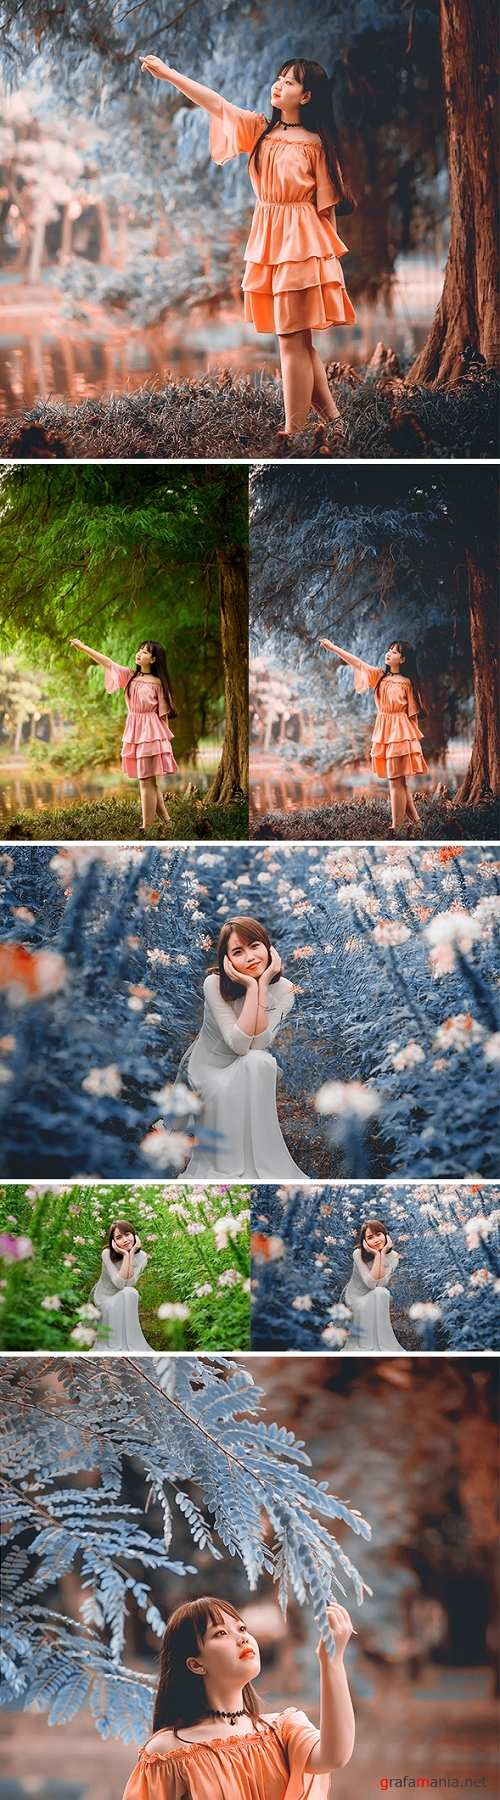 Cinetune   cinematic color grading Effects Photoshop Action 24460869